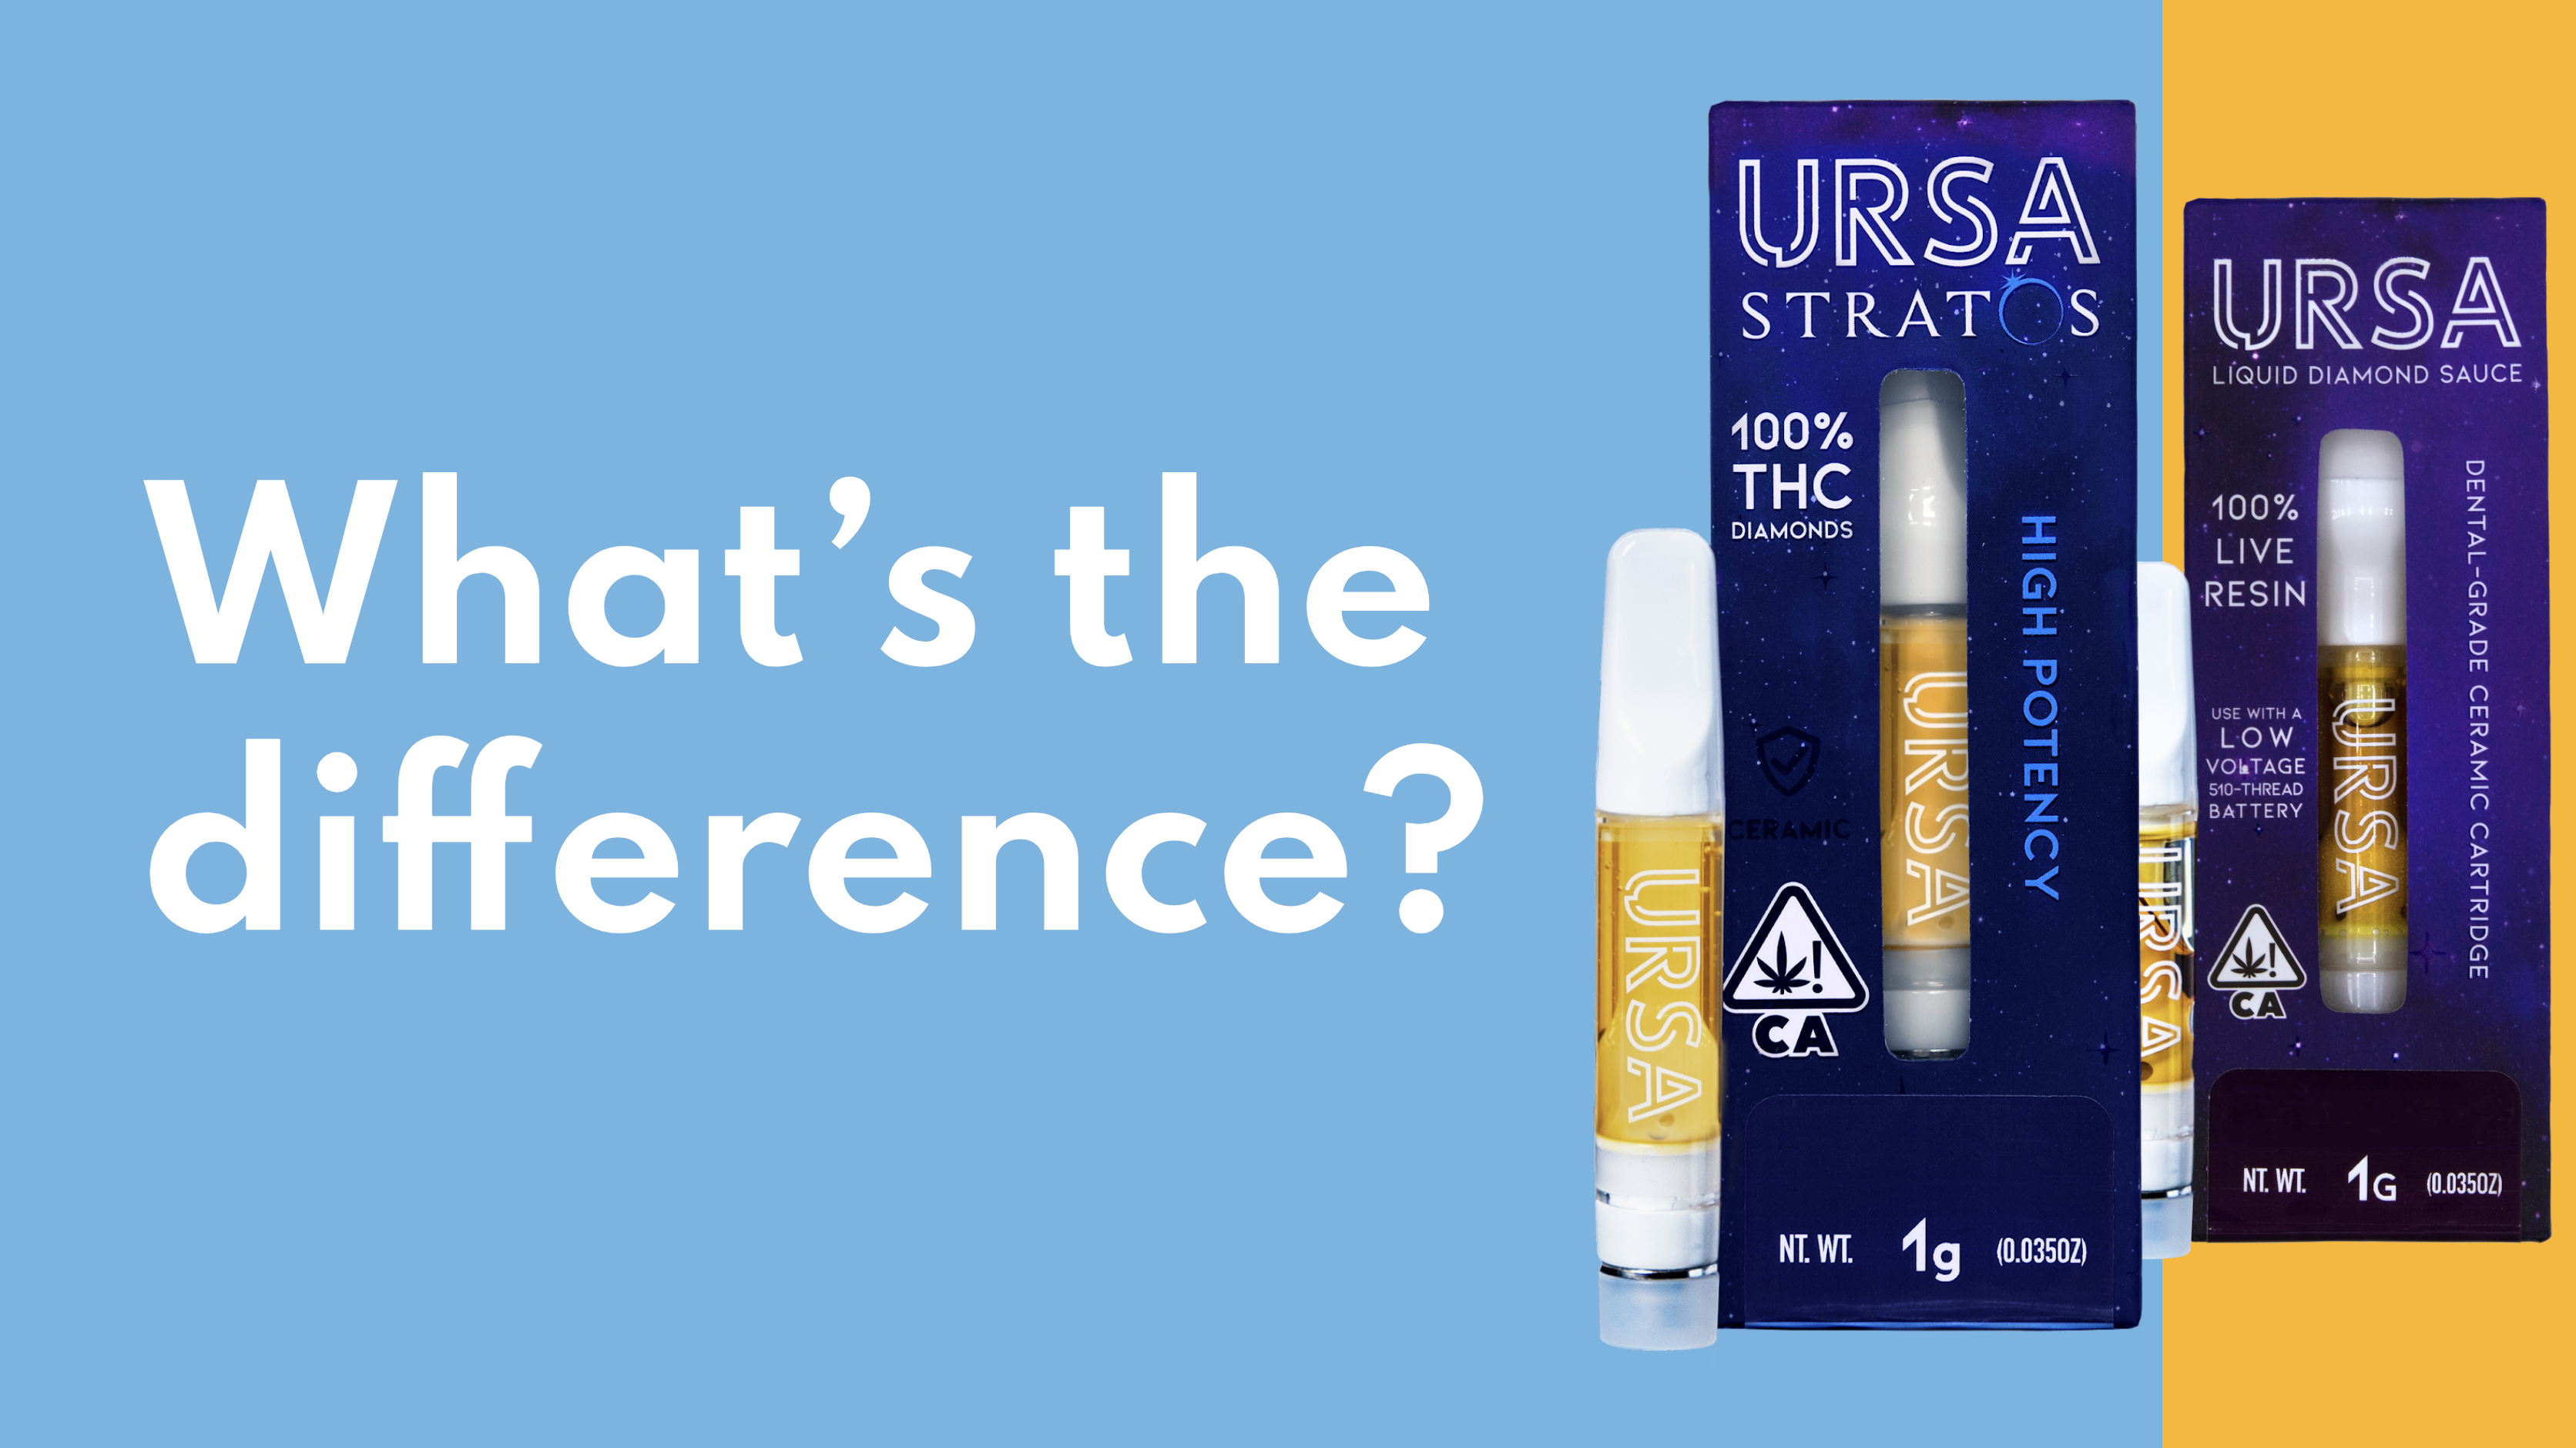 What is URSA STRATOS? How does it compare to Liquid Diamond Sauce Carts?